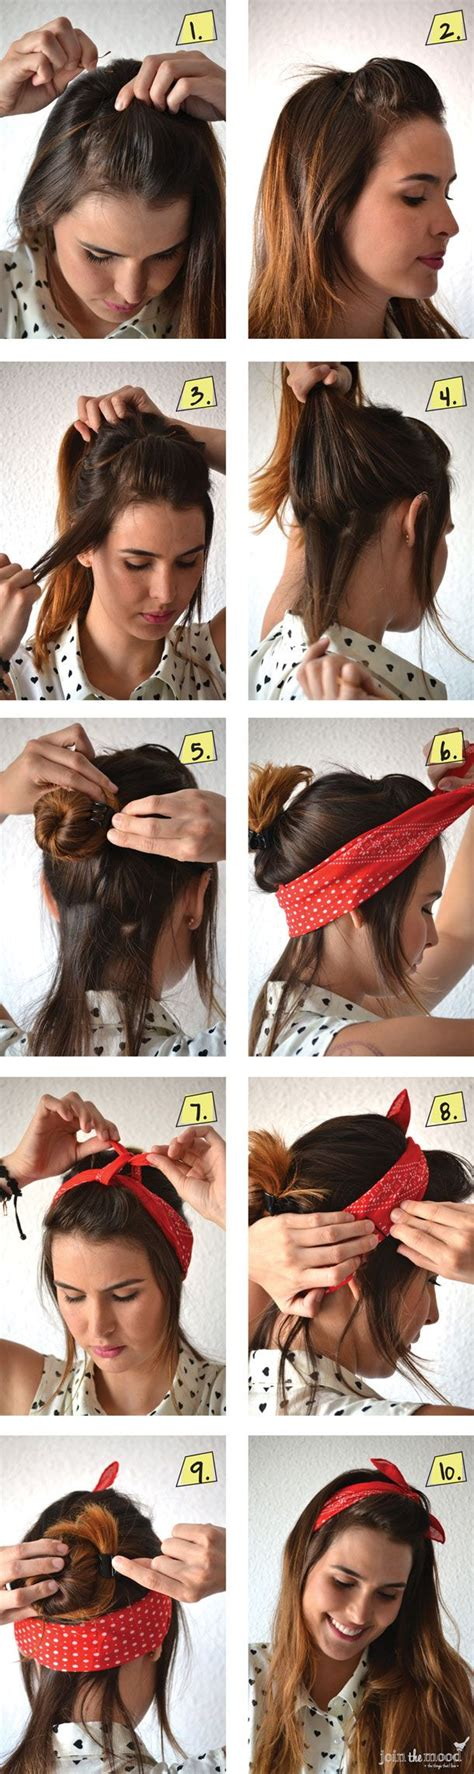 how do i look with different hair 14 tutorials for bandana hairstyles pretty designs